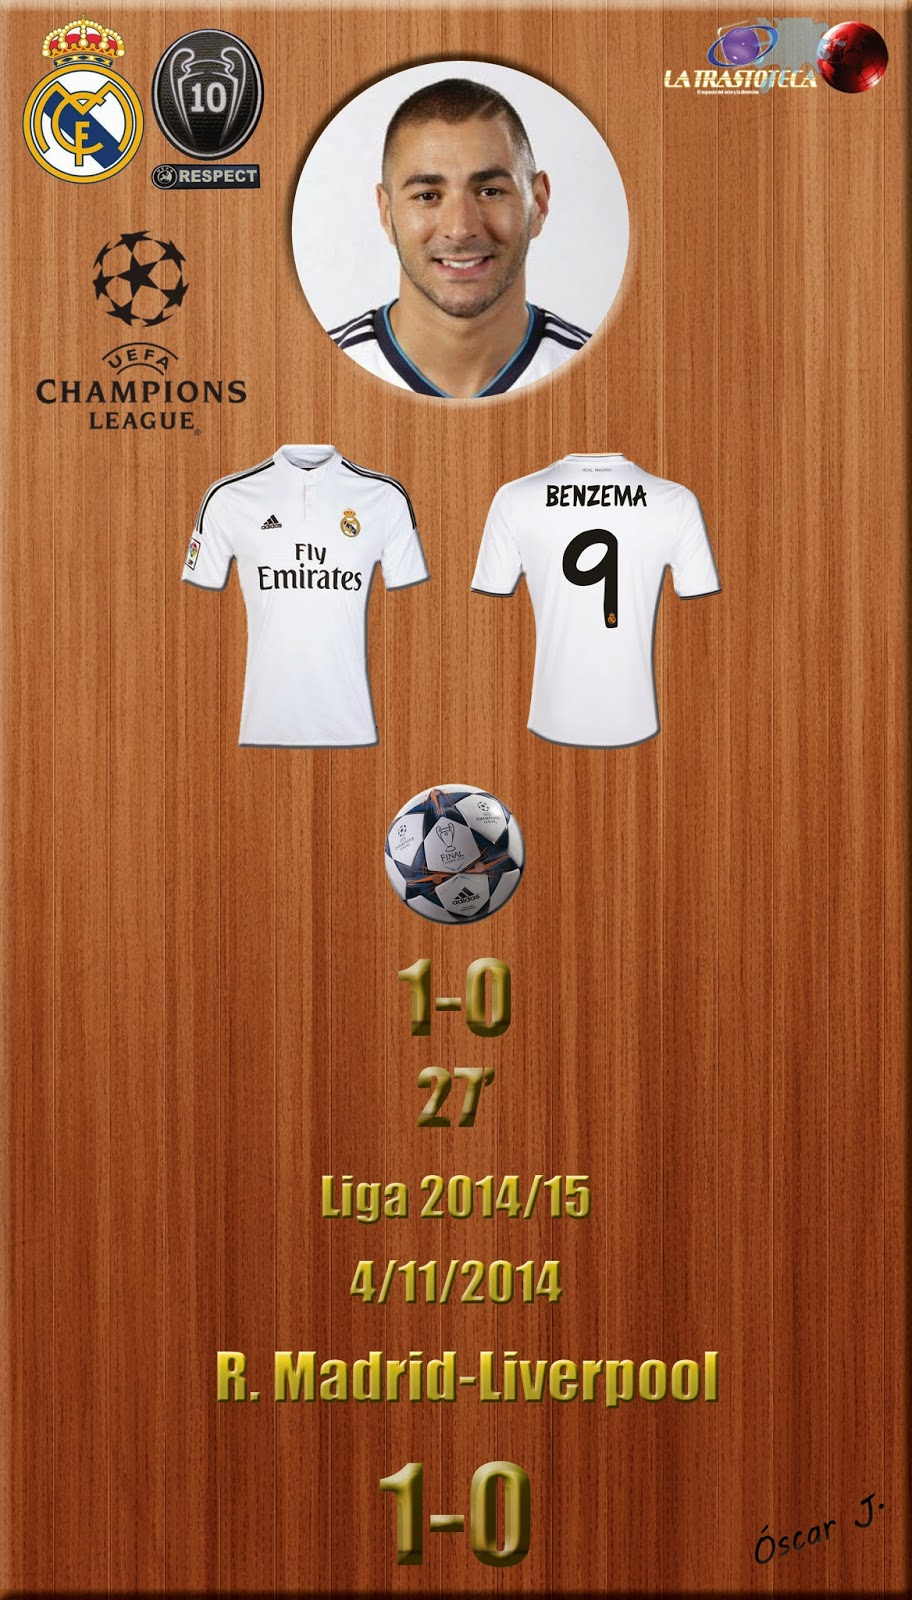 Benzema - (1-0) - Real Madrid 1-0 Liverpool - Champions League 2014/15 - (4/11/2014)